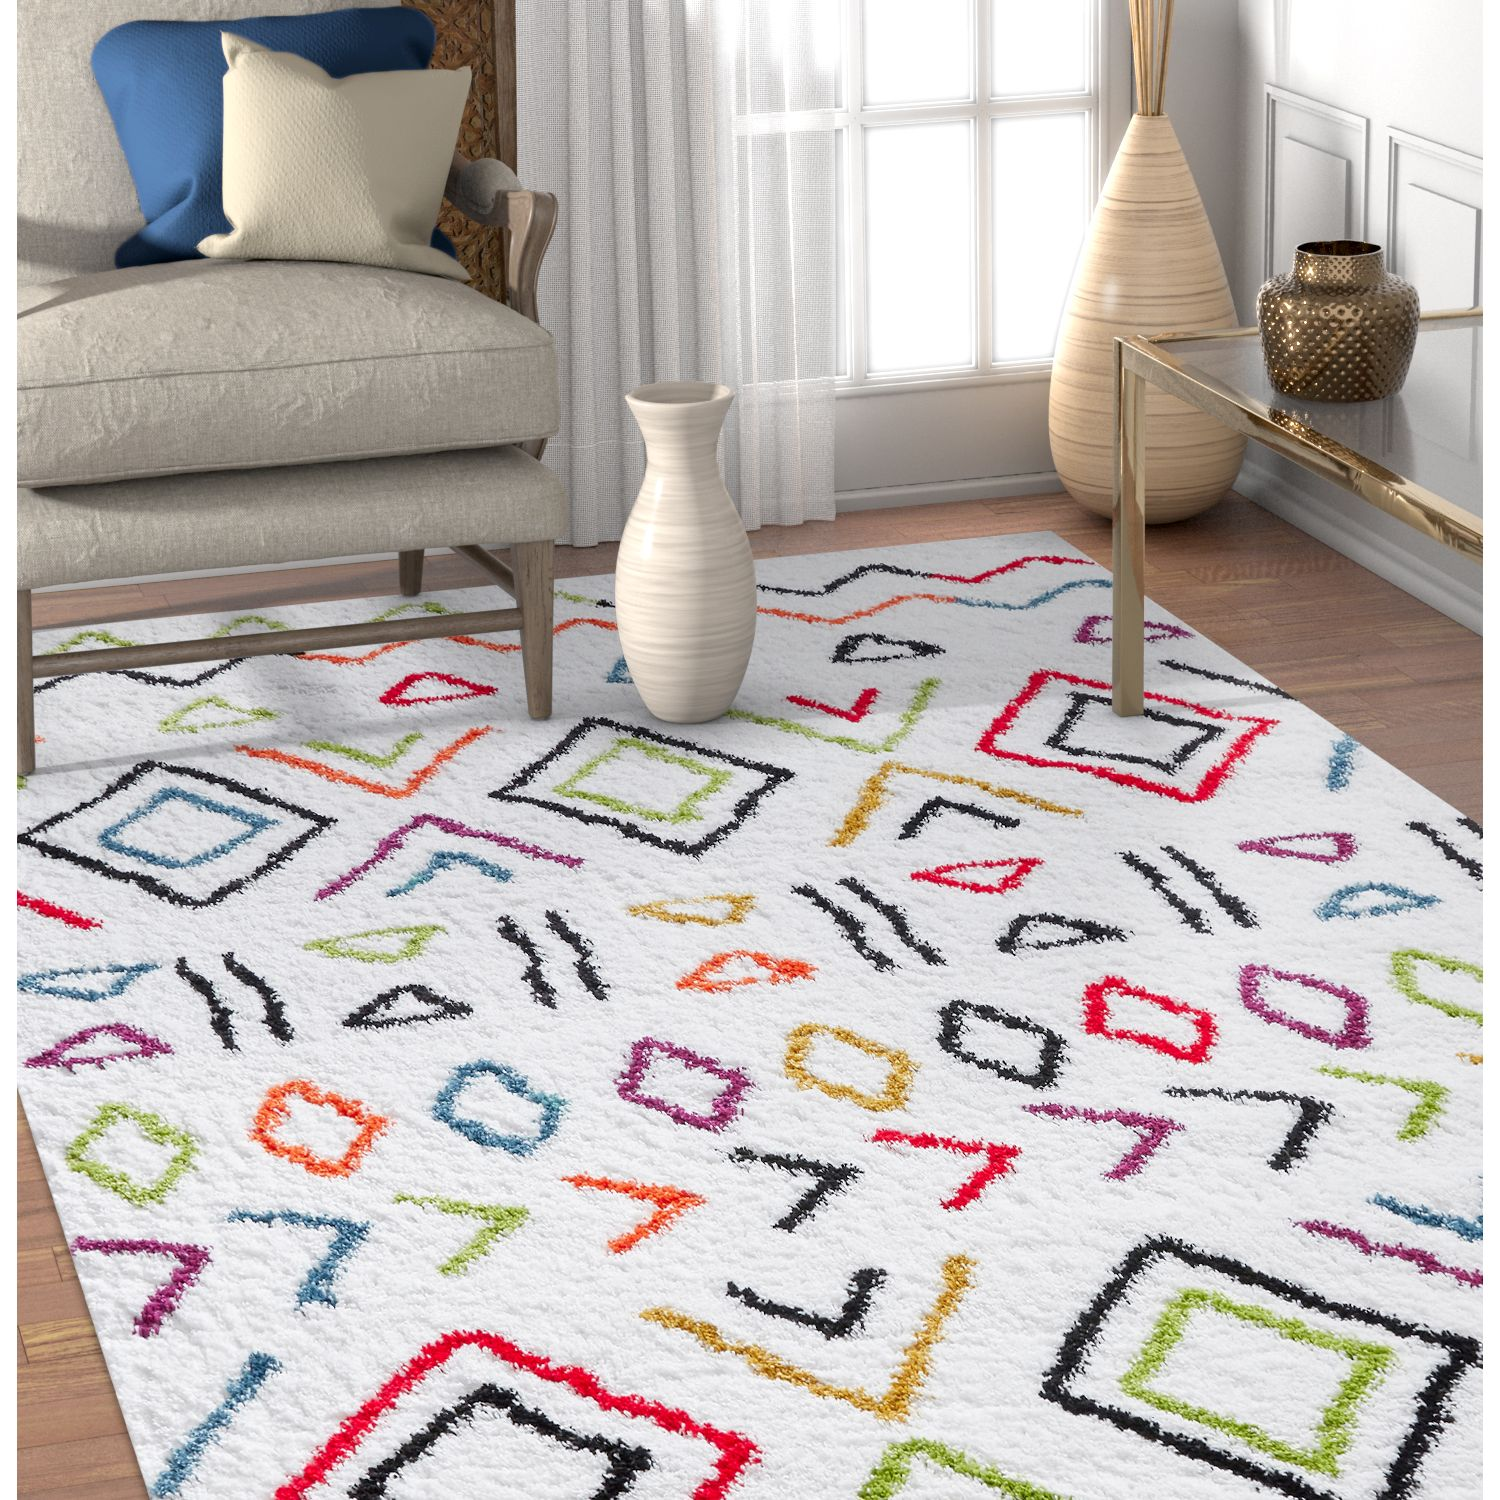 Well Woven Tribal Rhapsody Fes Moroccan Ethnic Shag White Area Rug